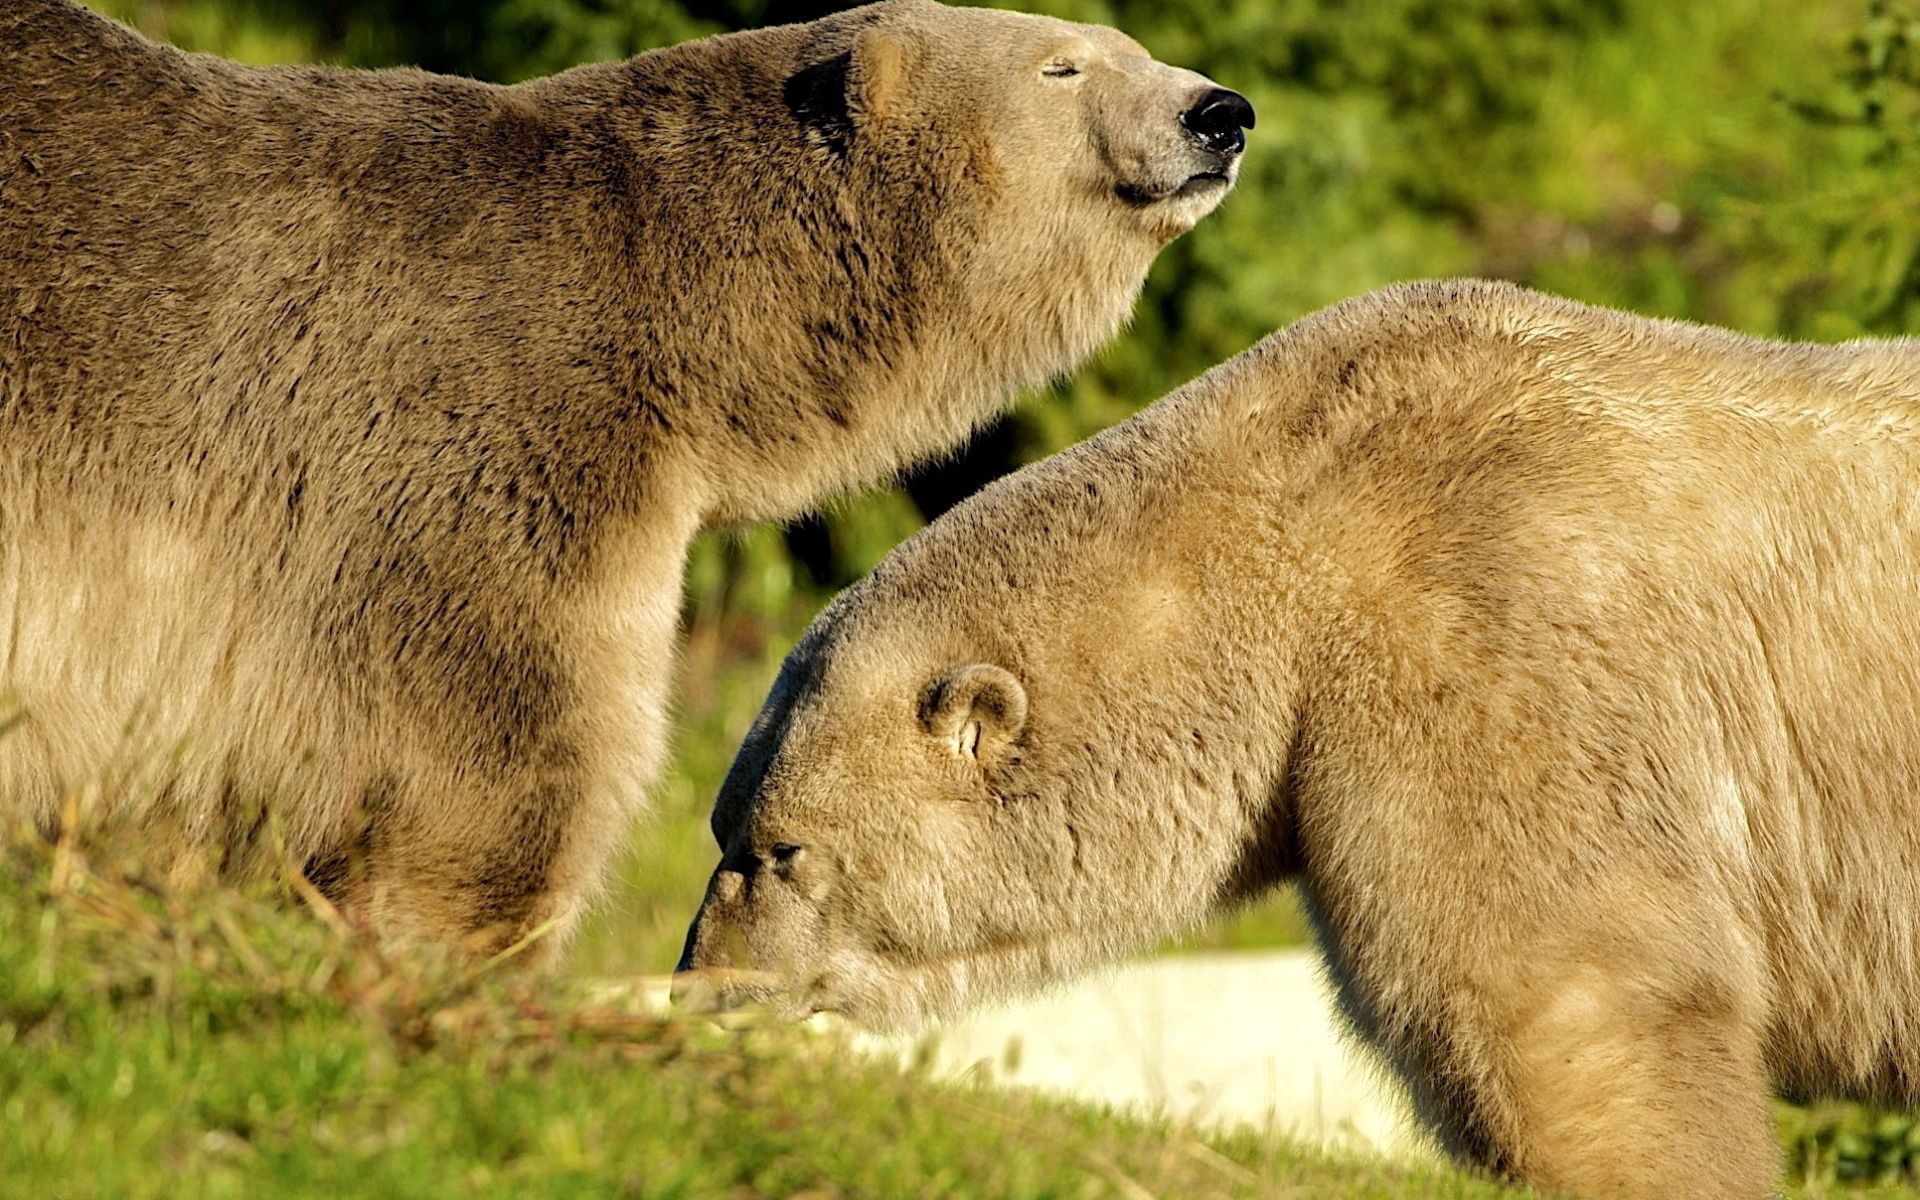 114553 download wallpaper Animals, Bears, Couple, Pair, Grass, Stroll, Sunlight screensavers and pictures for free